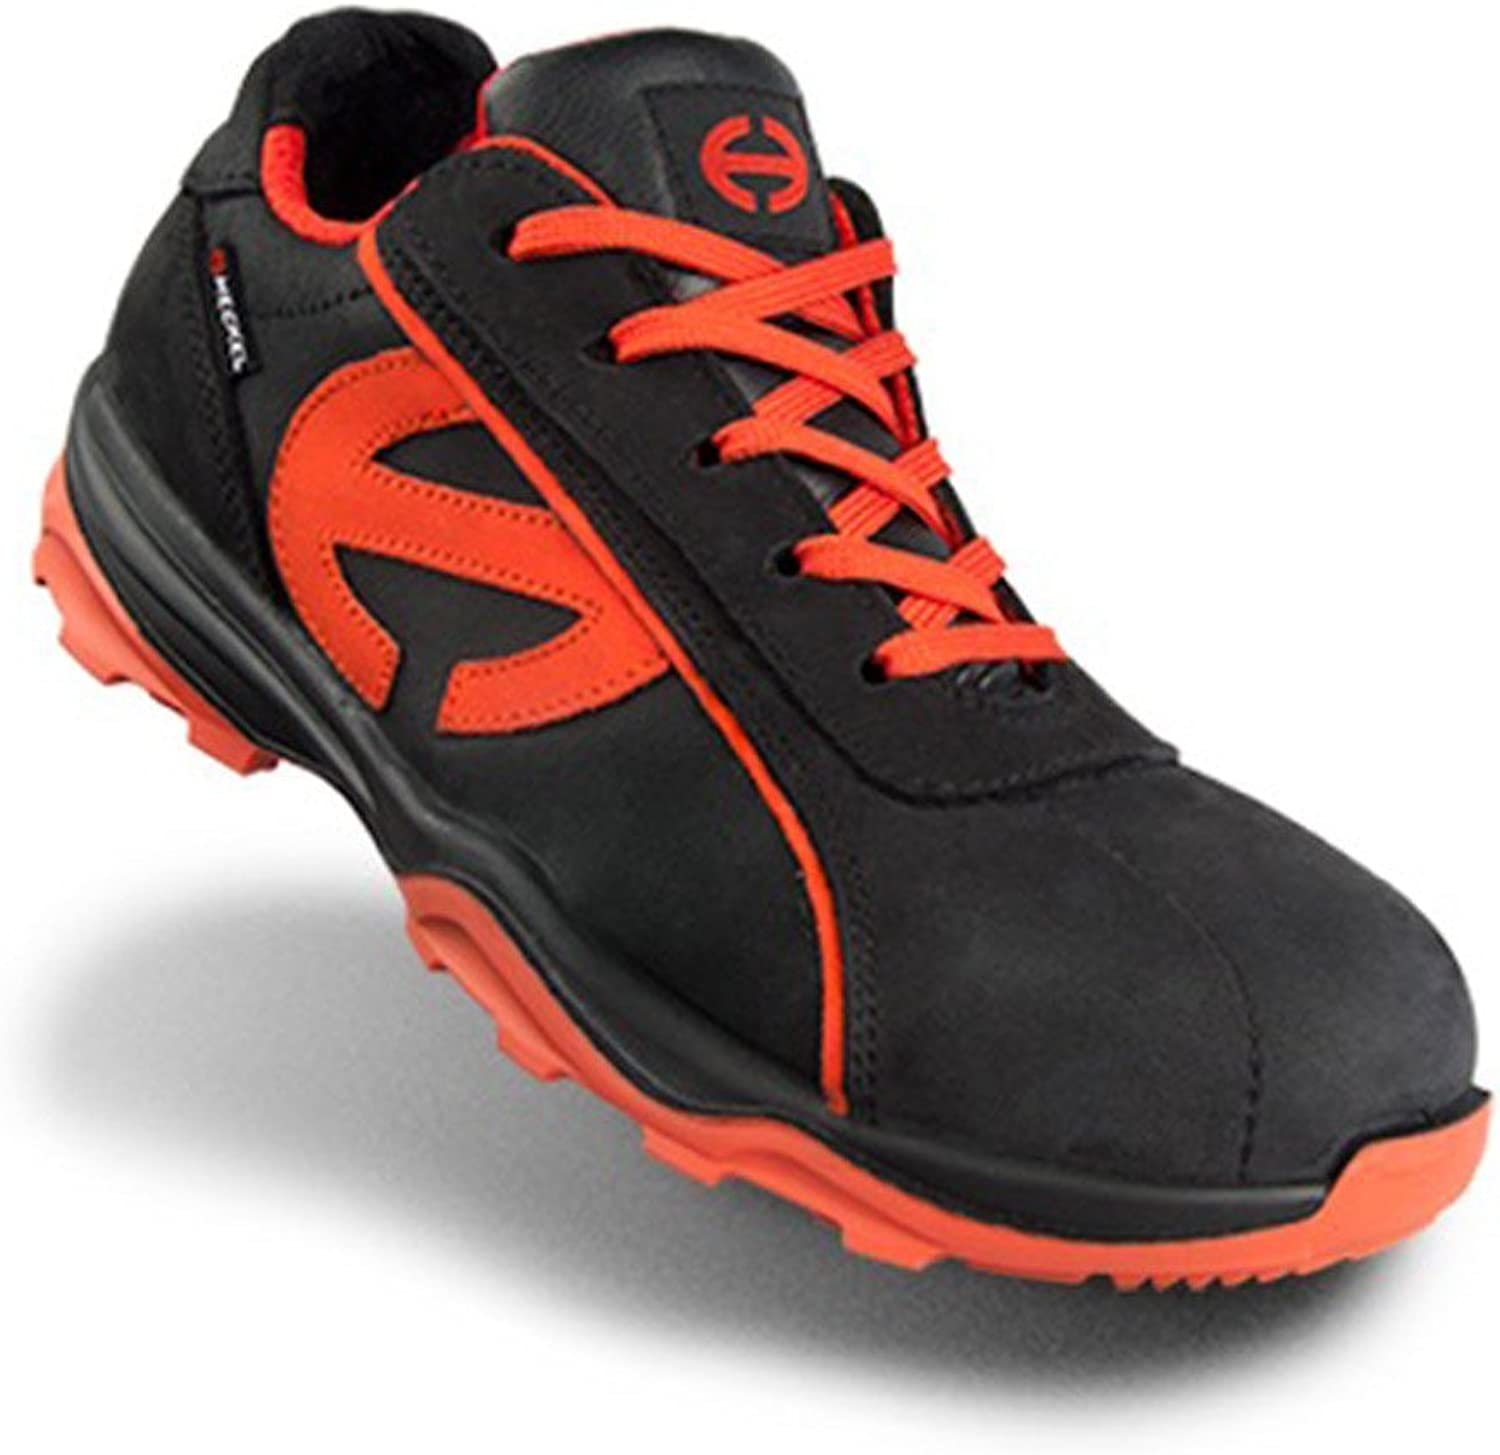 Heckel RUNR 300 S3 SRC Work shoes Safety shoes Modern, Ultralight Metal Free Low